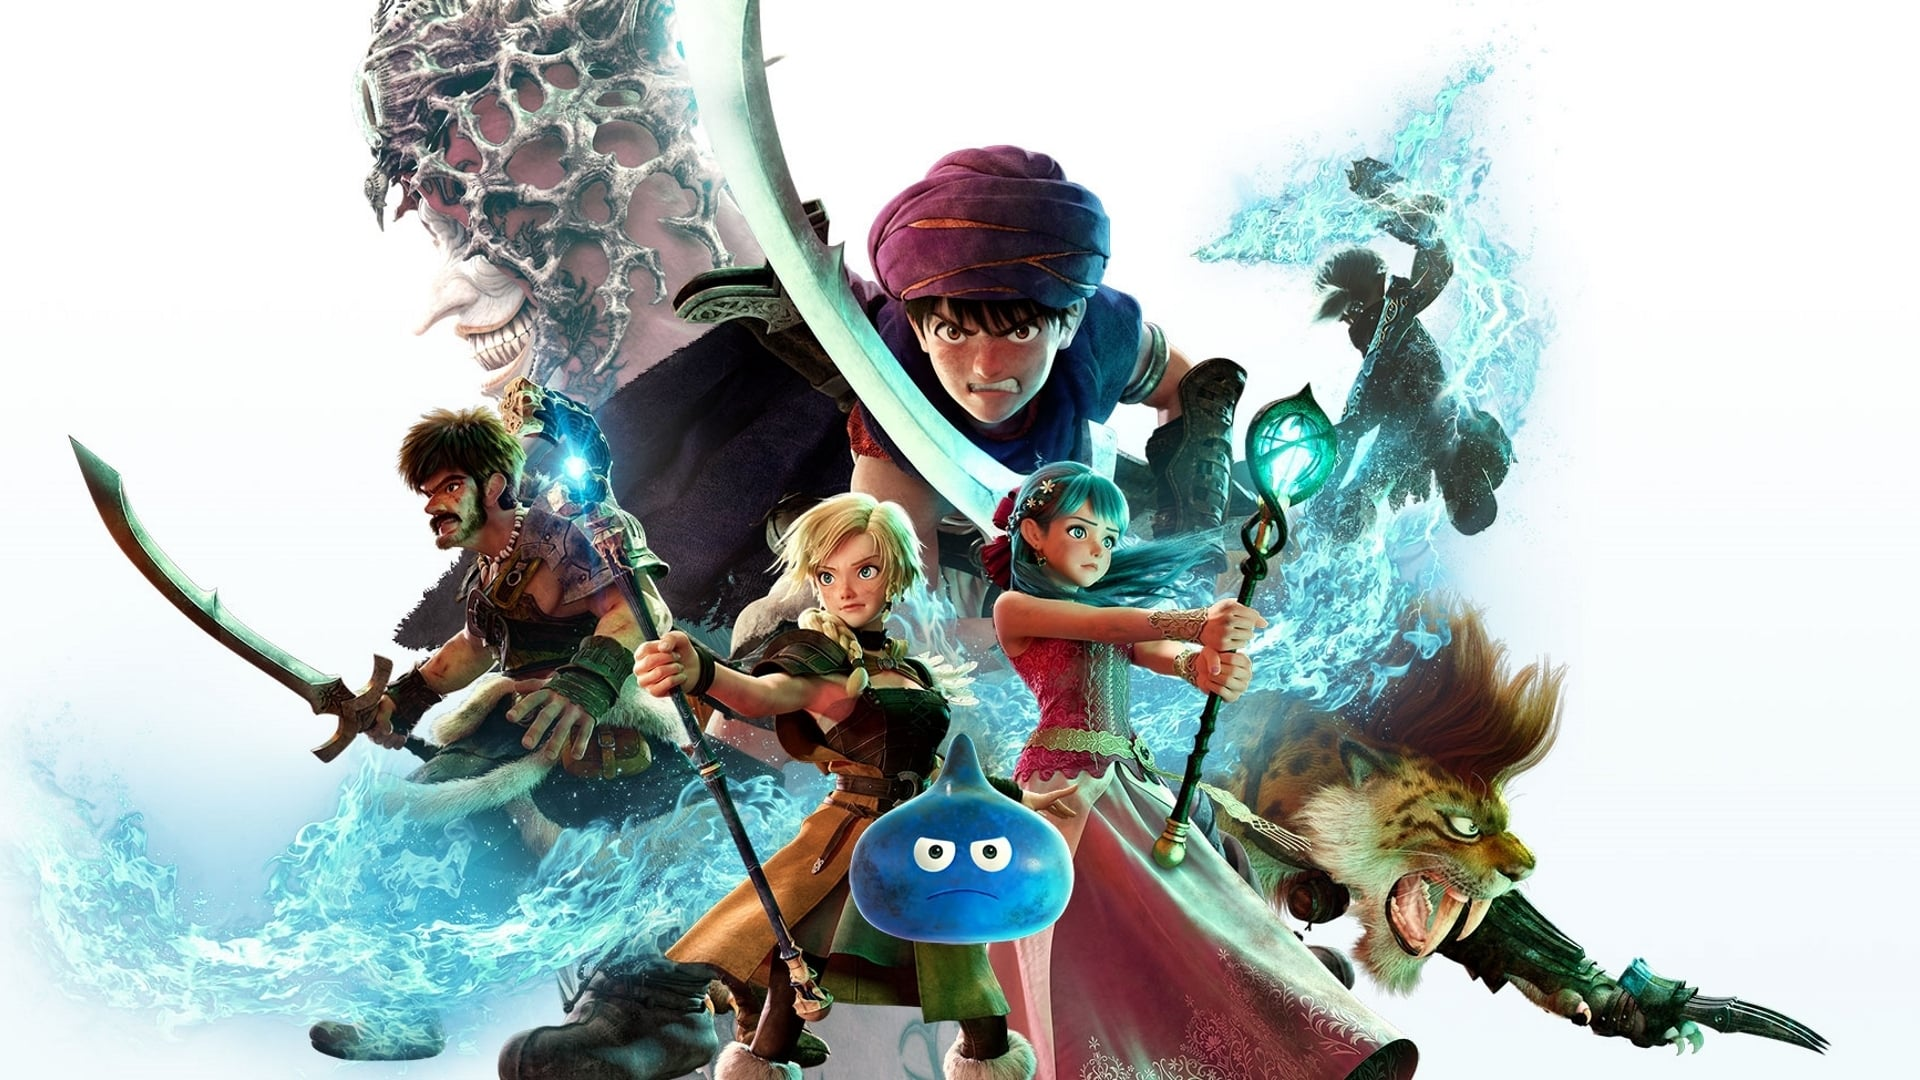 DESCARGAR Dragon Quest: Your Story (2019) pelicula completa en español latino HD